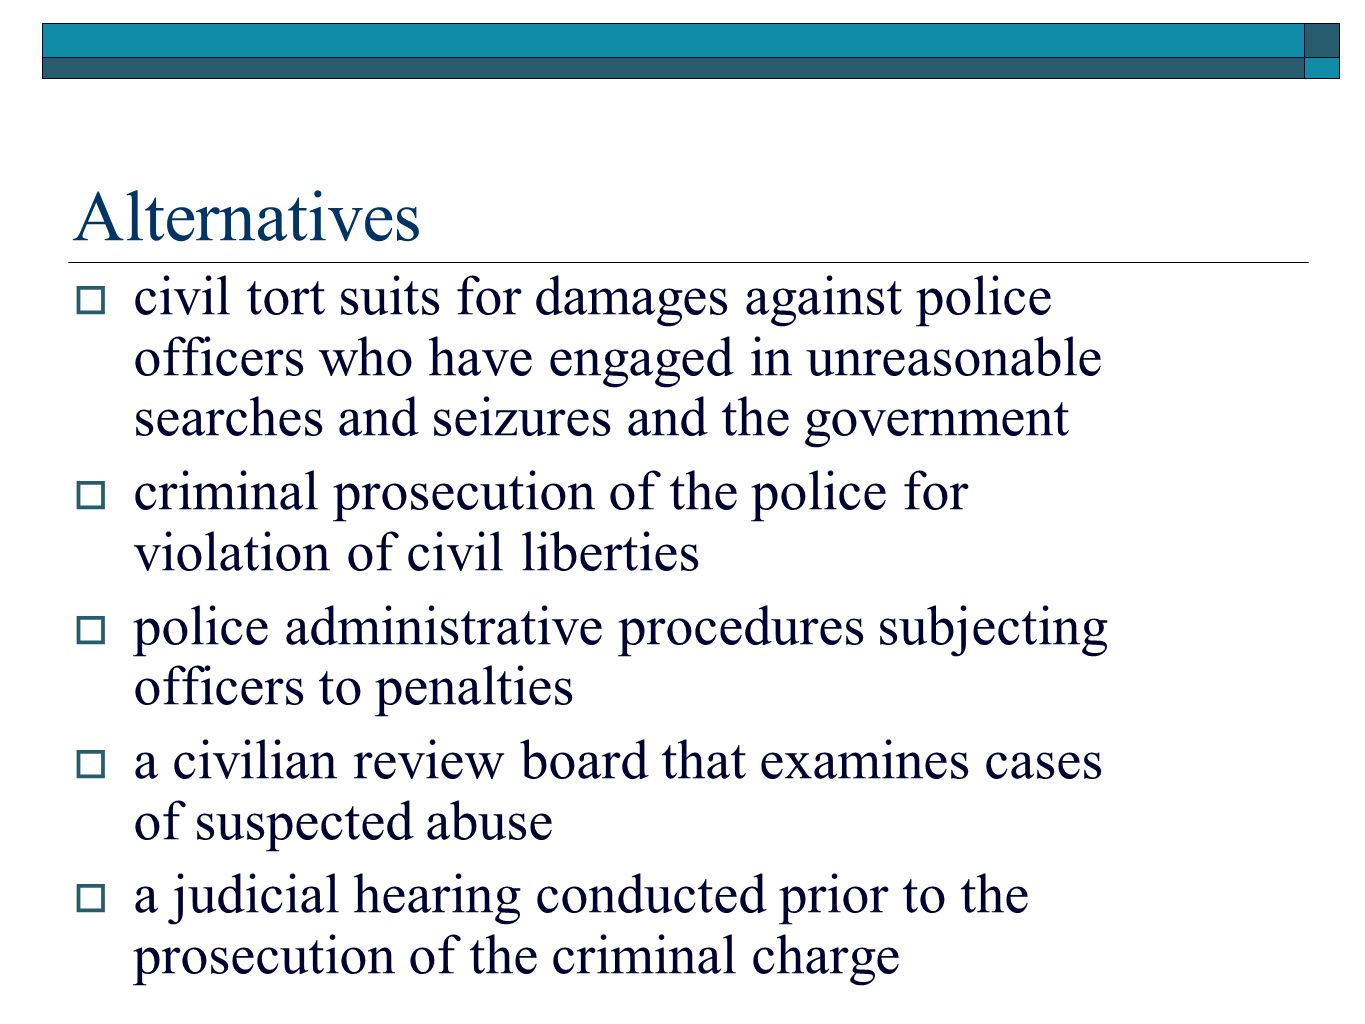 Alternatives  civil tort suits for damages against police officers who have engaged in unreasonable searches and seizures and the government  criminal prosecution of the police for violation of civil liberties  police administrative procedures subjecting officers to penalties  a civilian review board that examines cases of suspected abuse  a judicial hearing conducted prior to the prosecution of the criminal charge